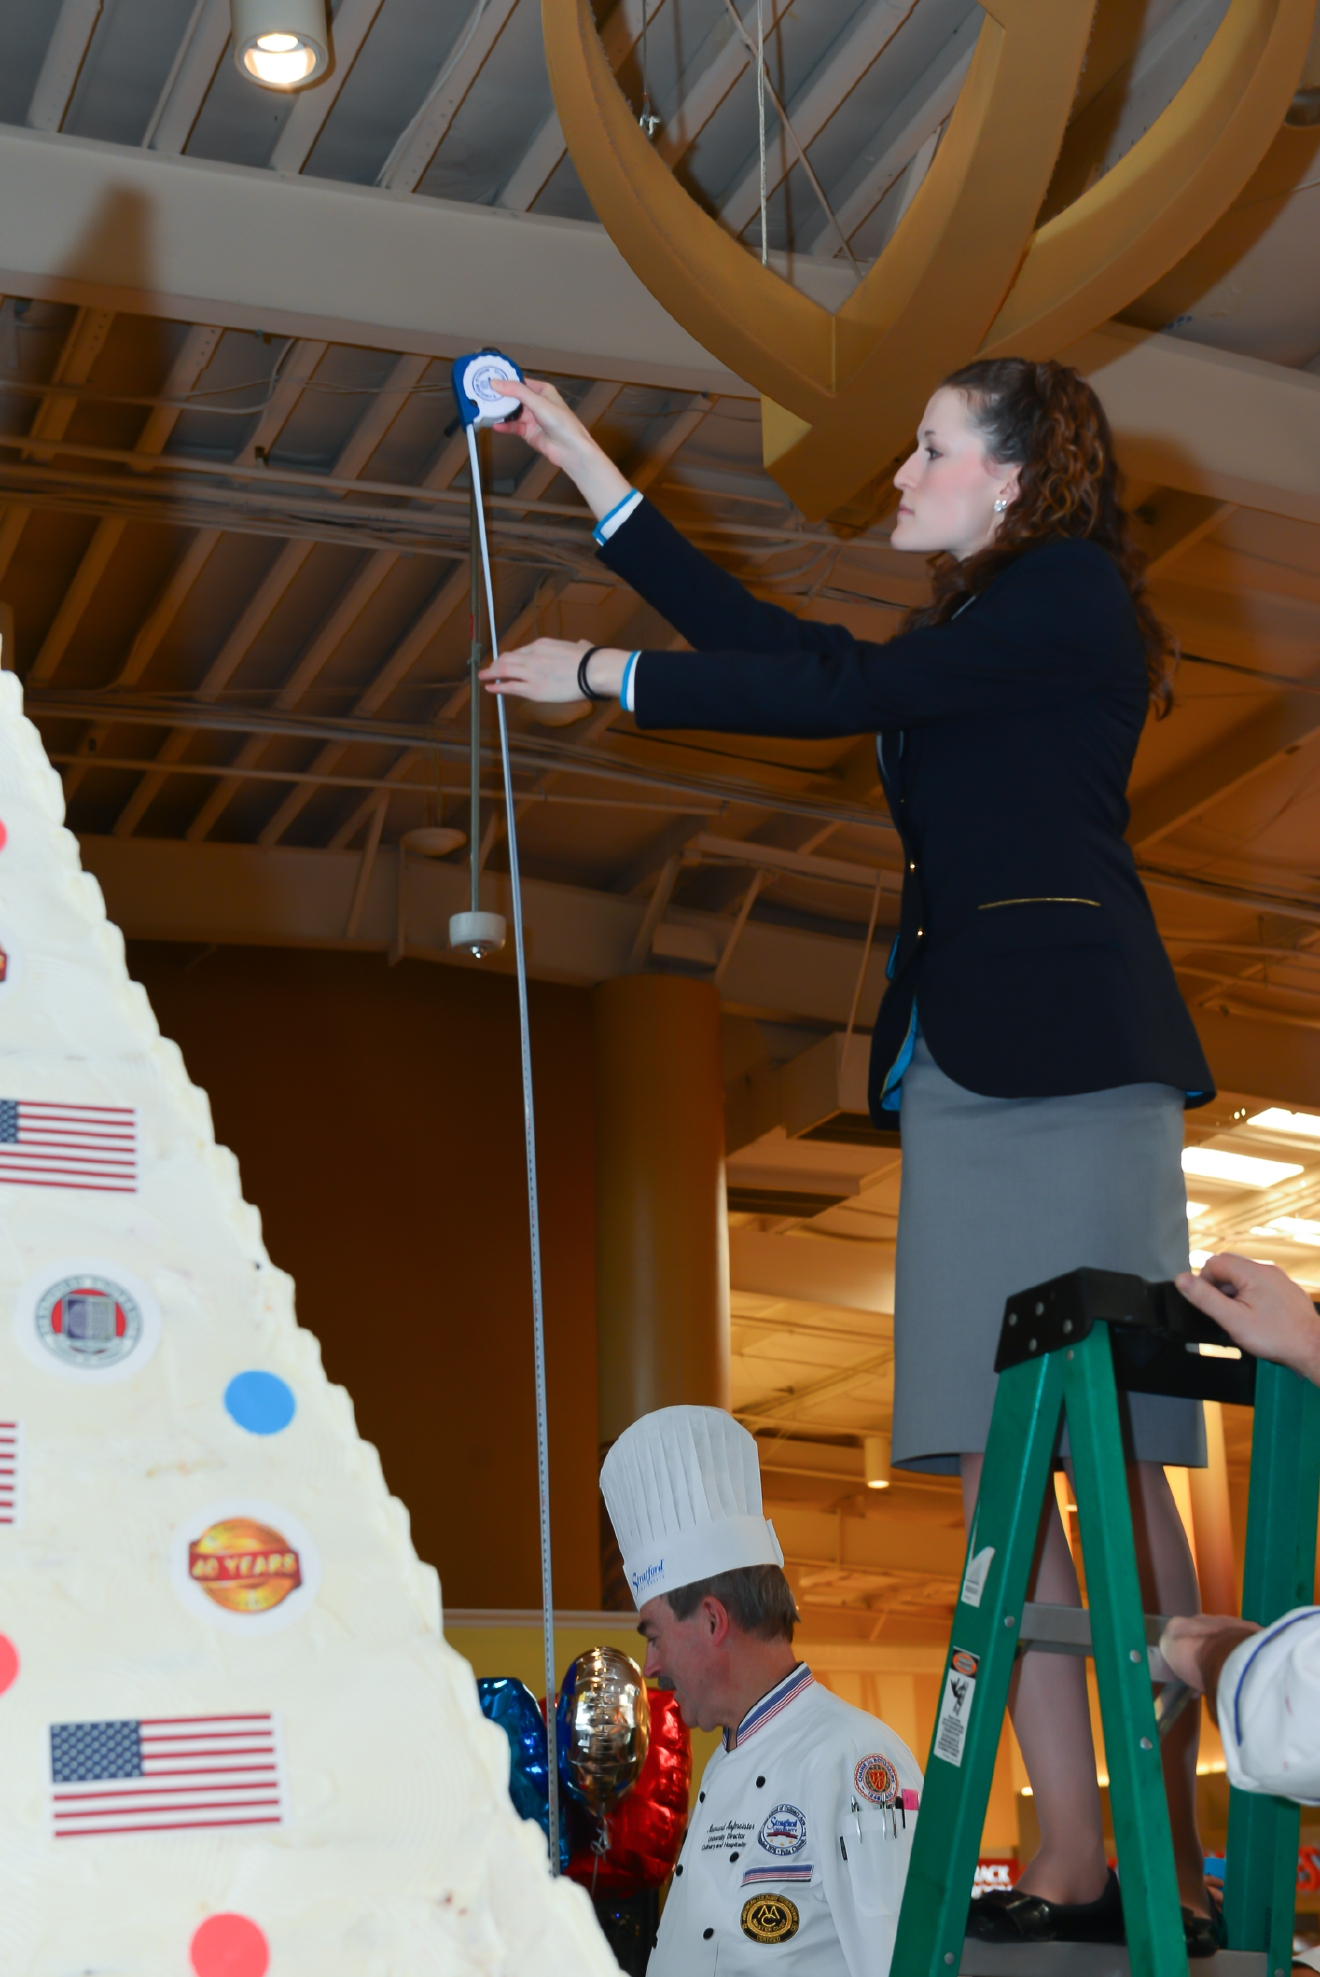 Guinness World Records Judge Kellie Ferrick takes the essential measurement to determine the new world record. (Image: Courtesy Stratford University)